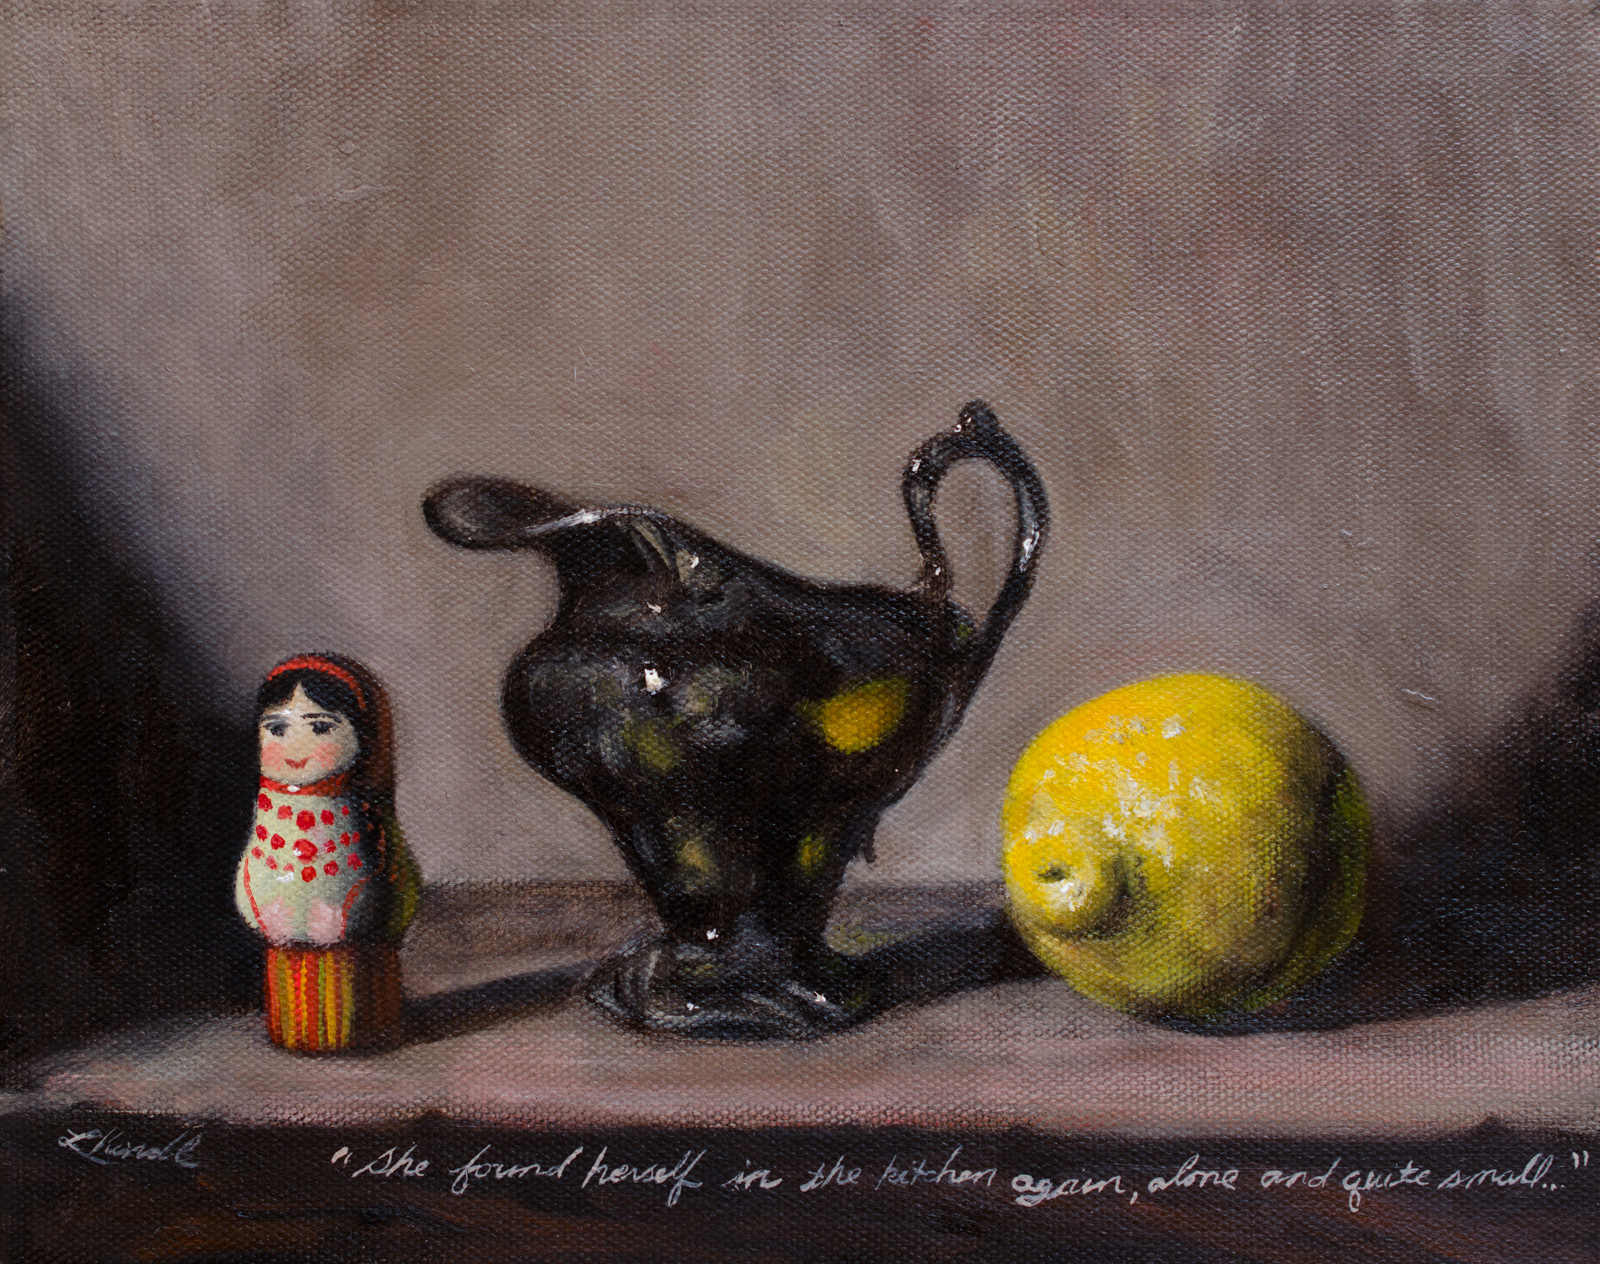 """She found herself in the kitchen again, alone and quite small..."" oil on canvas, 8x10"""